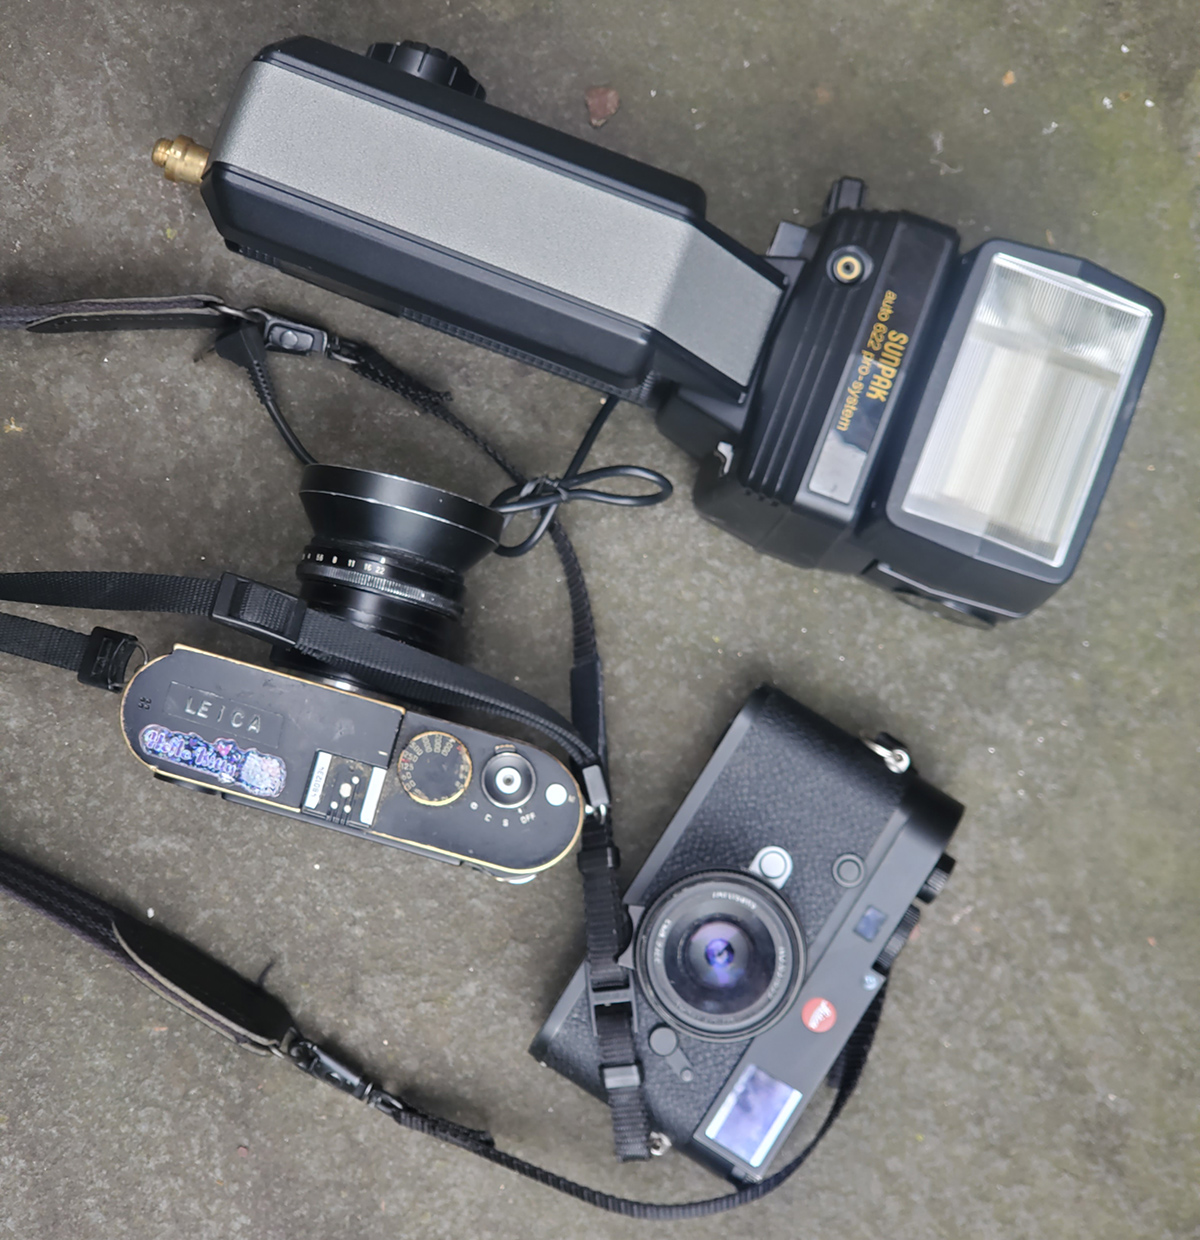 two small cameras and a large flash lying on the ground